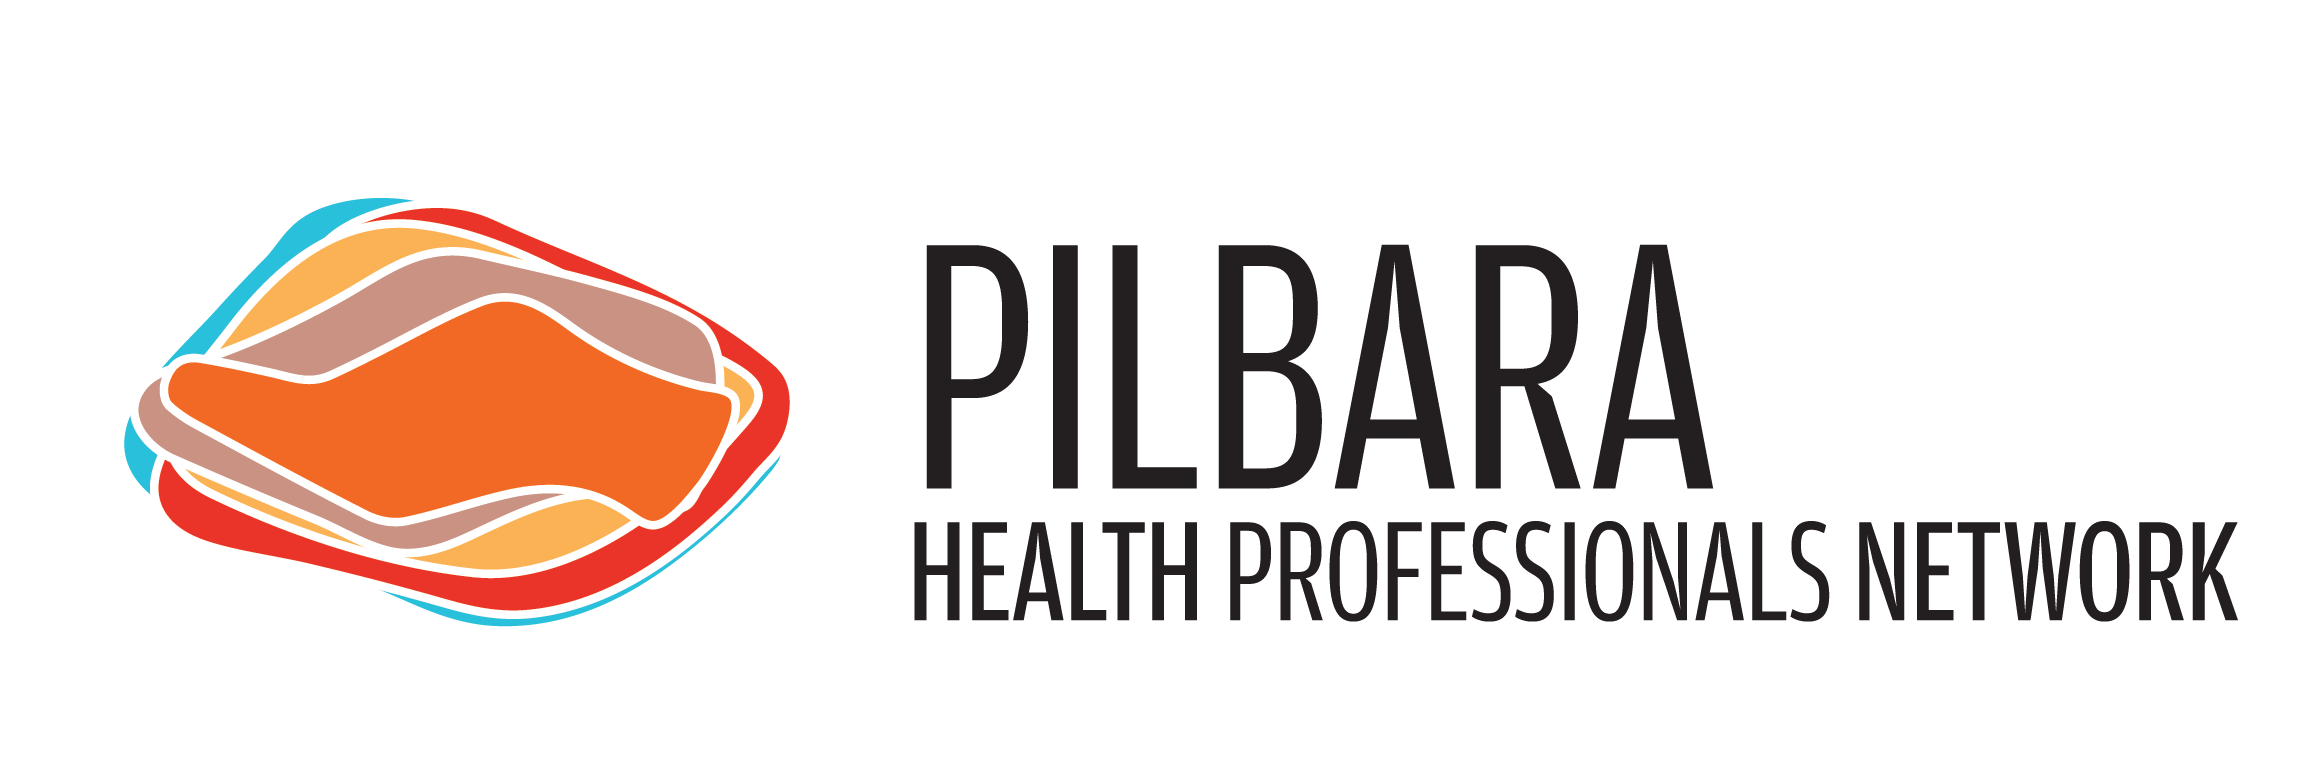 Pilbara Health Professional Network